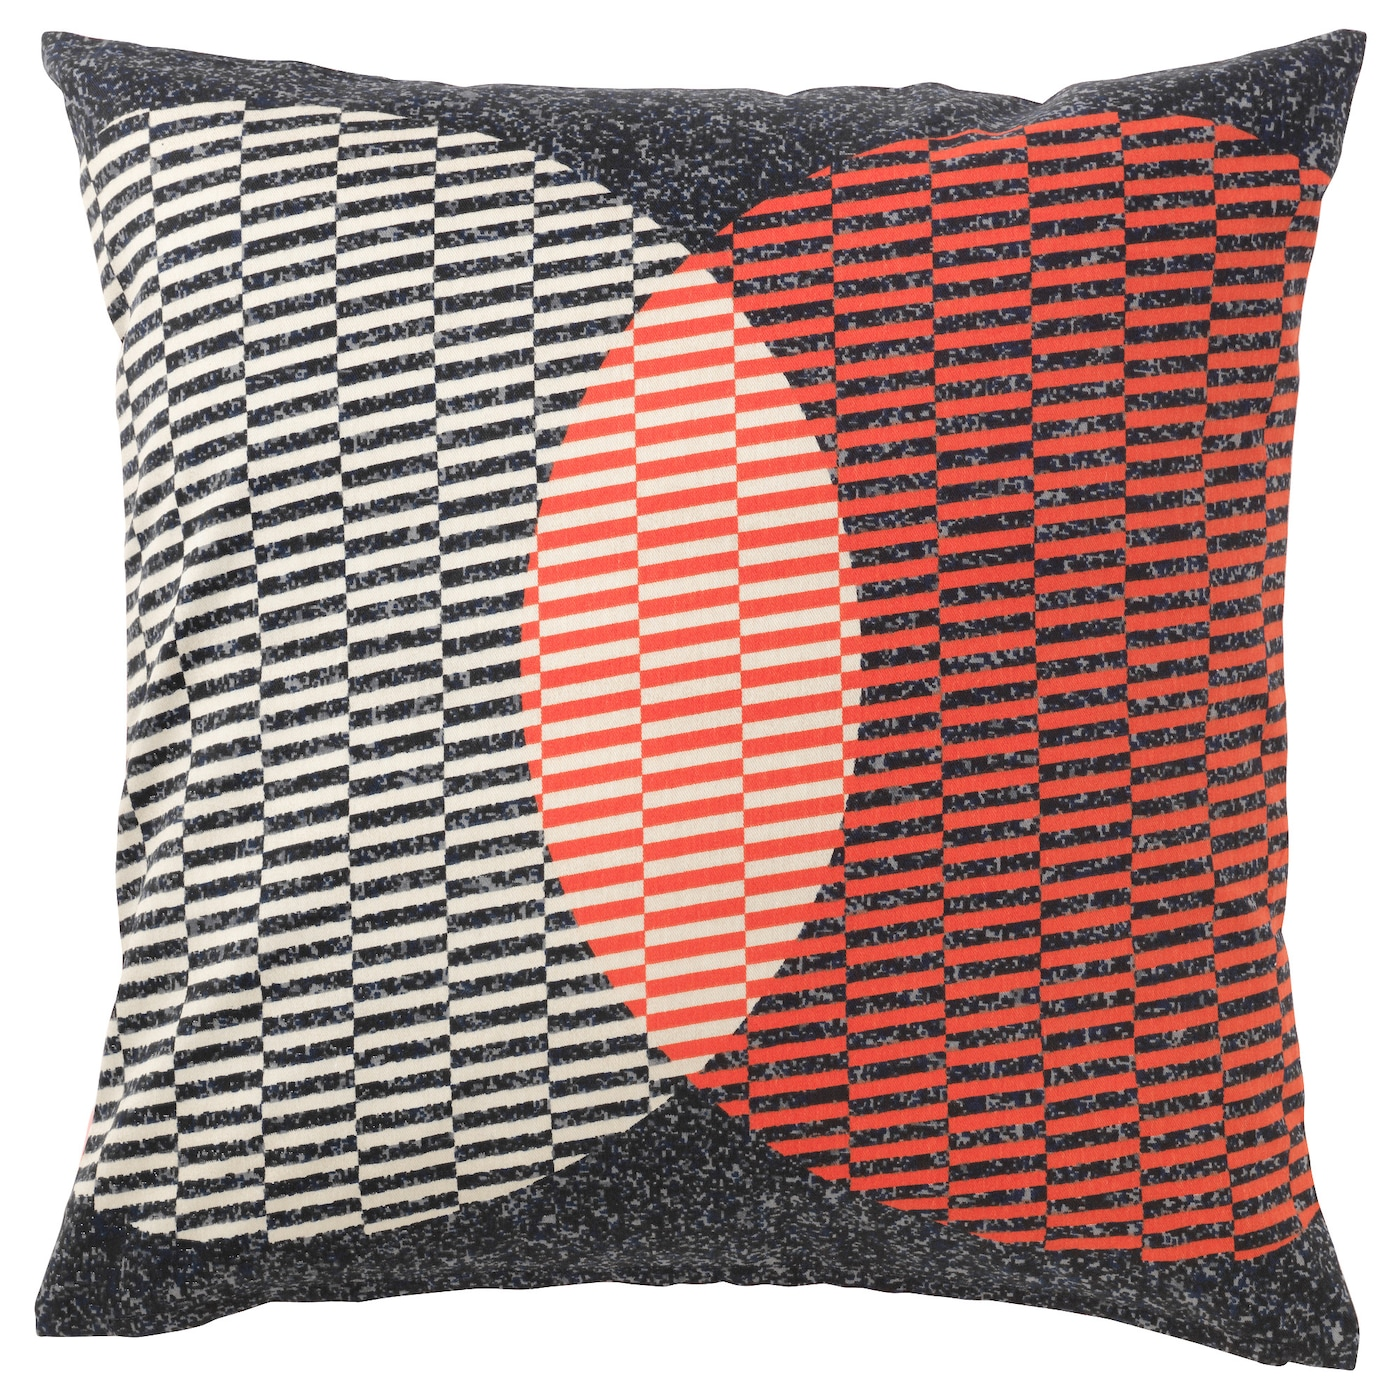 IKEA VÅRLÖK cushion cover You can easily vary the look because the two sides have different designs.